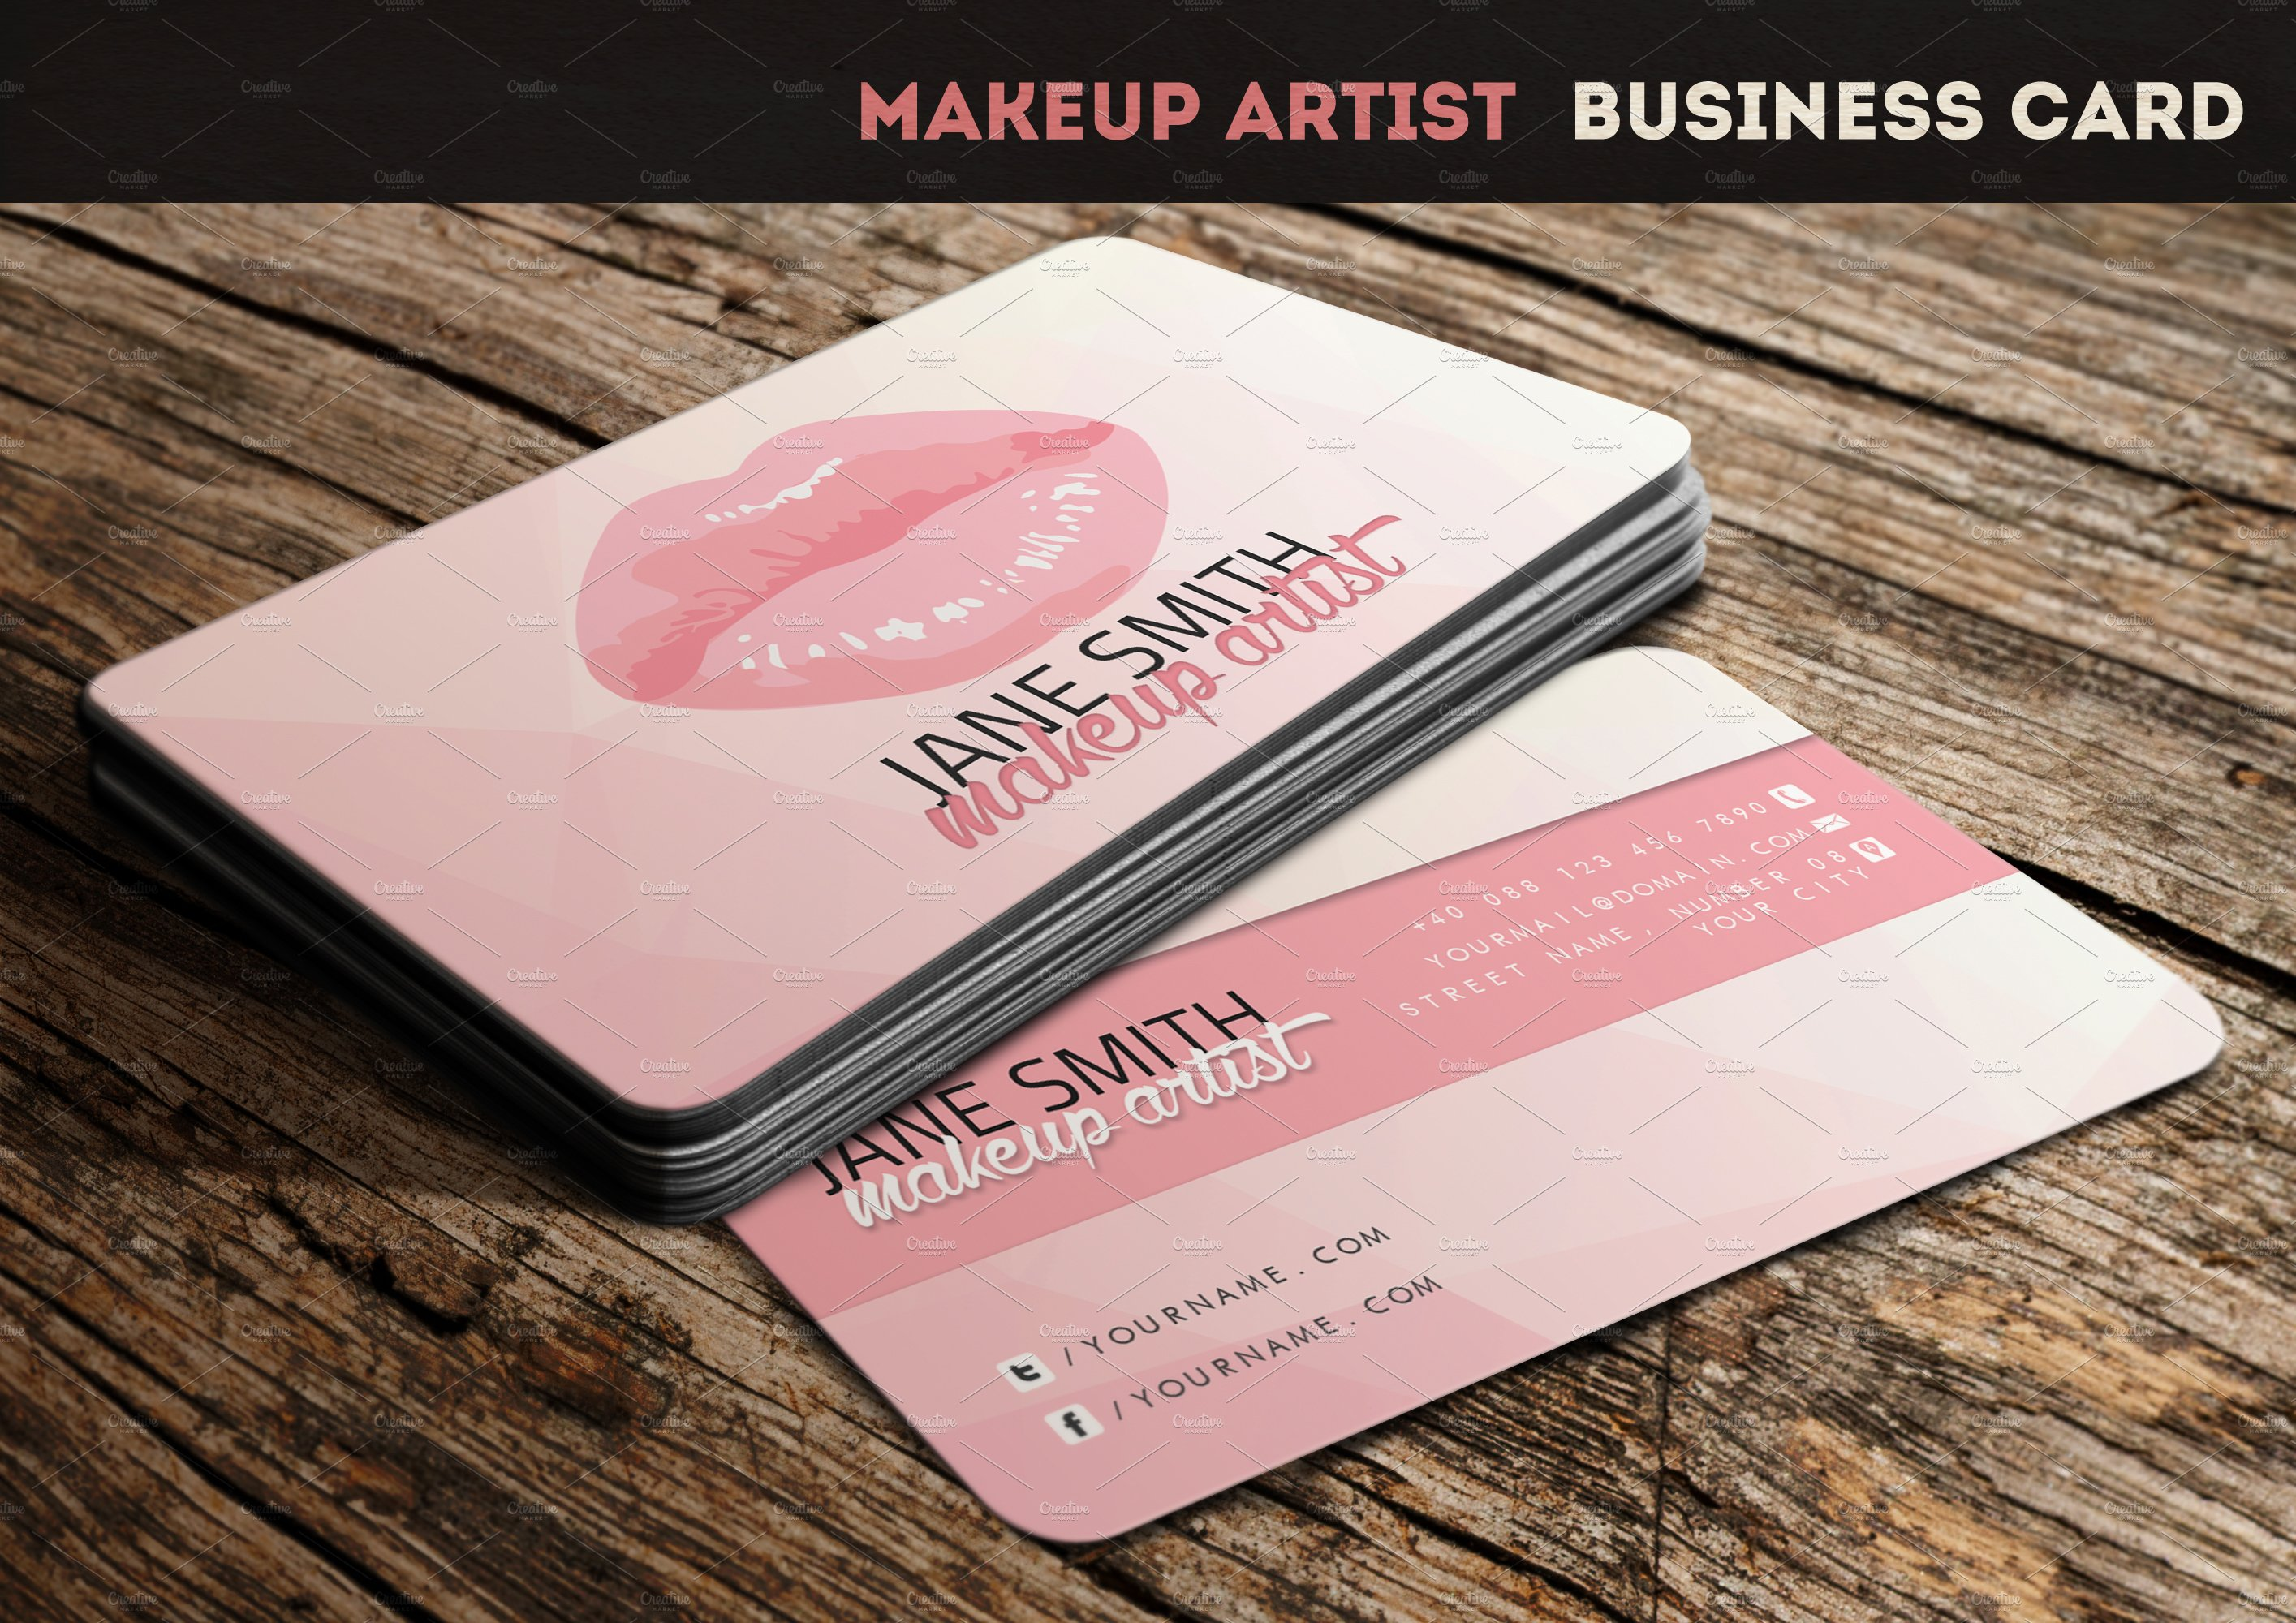 Makeup artist business card business card templates creative market reheart